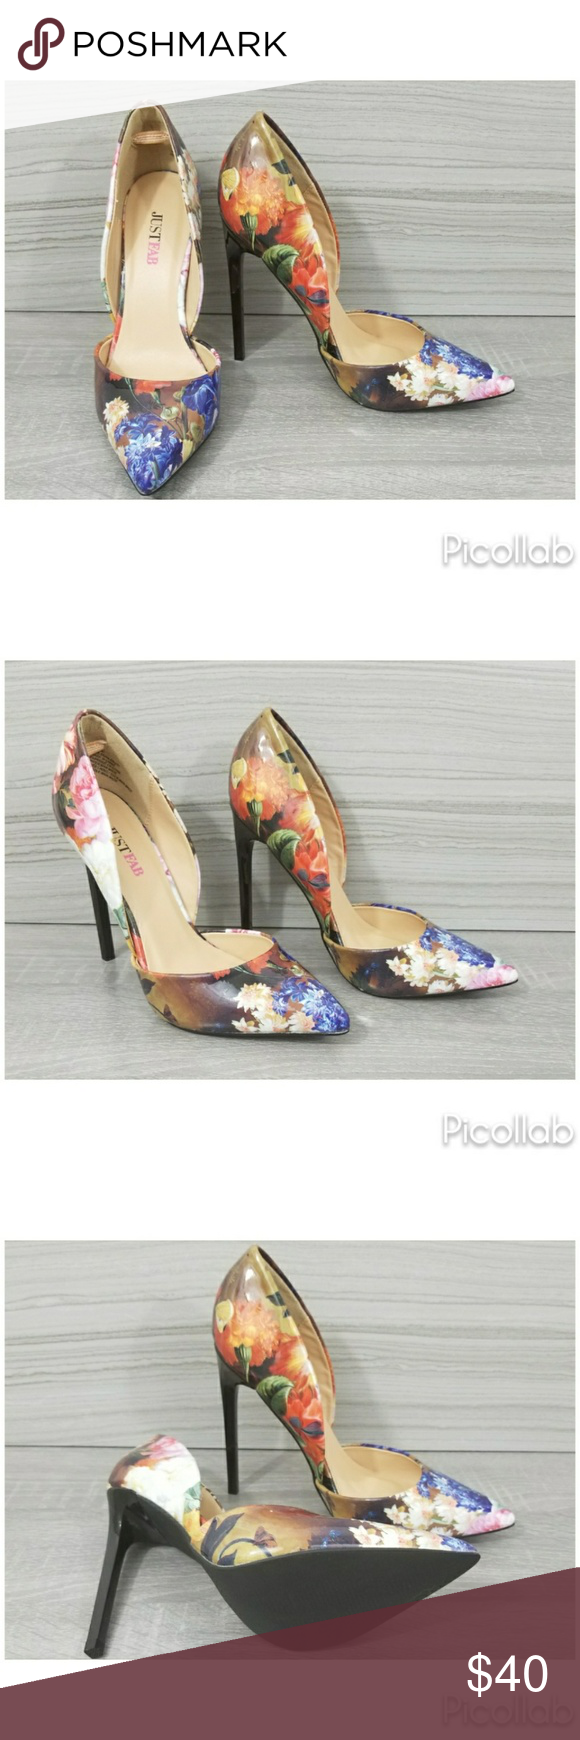 Floral D'orsay Pumps Double d'orsay with a pointed toe and a lacquered heel.  Patent Leather JustFab Shoes Heels